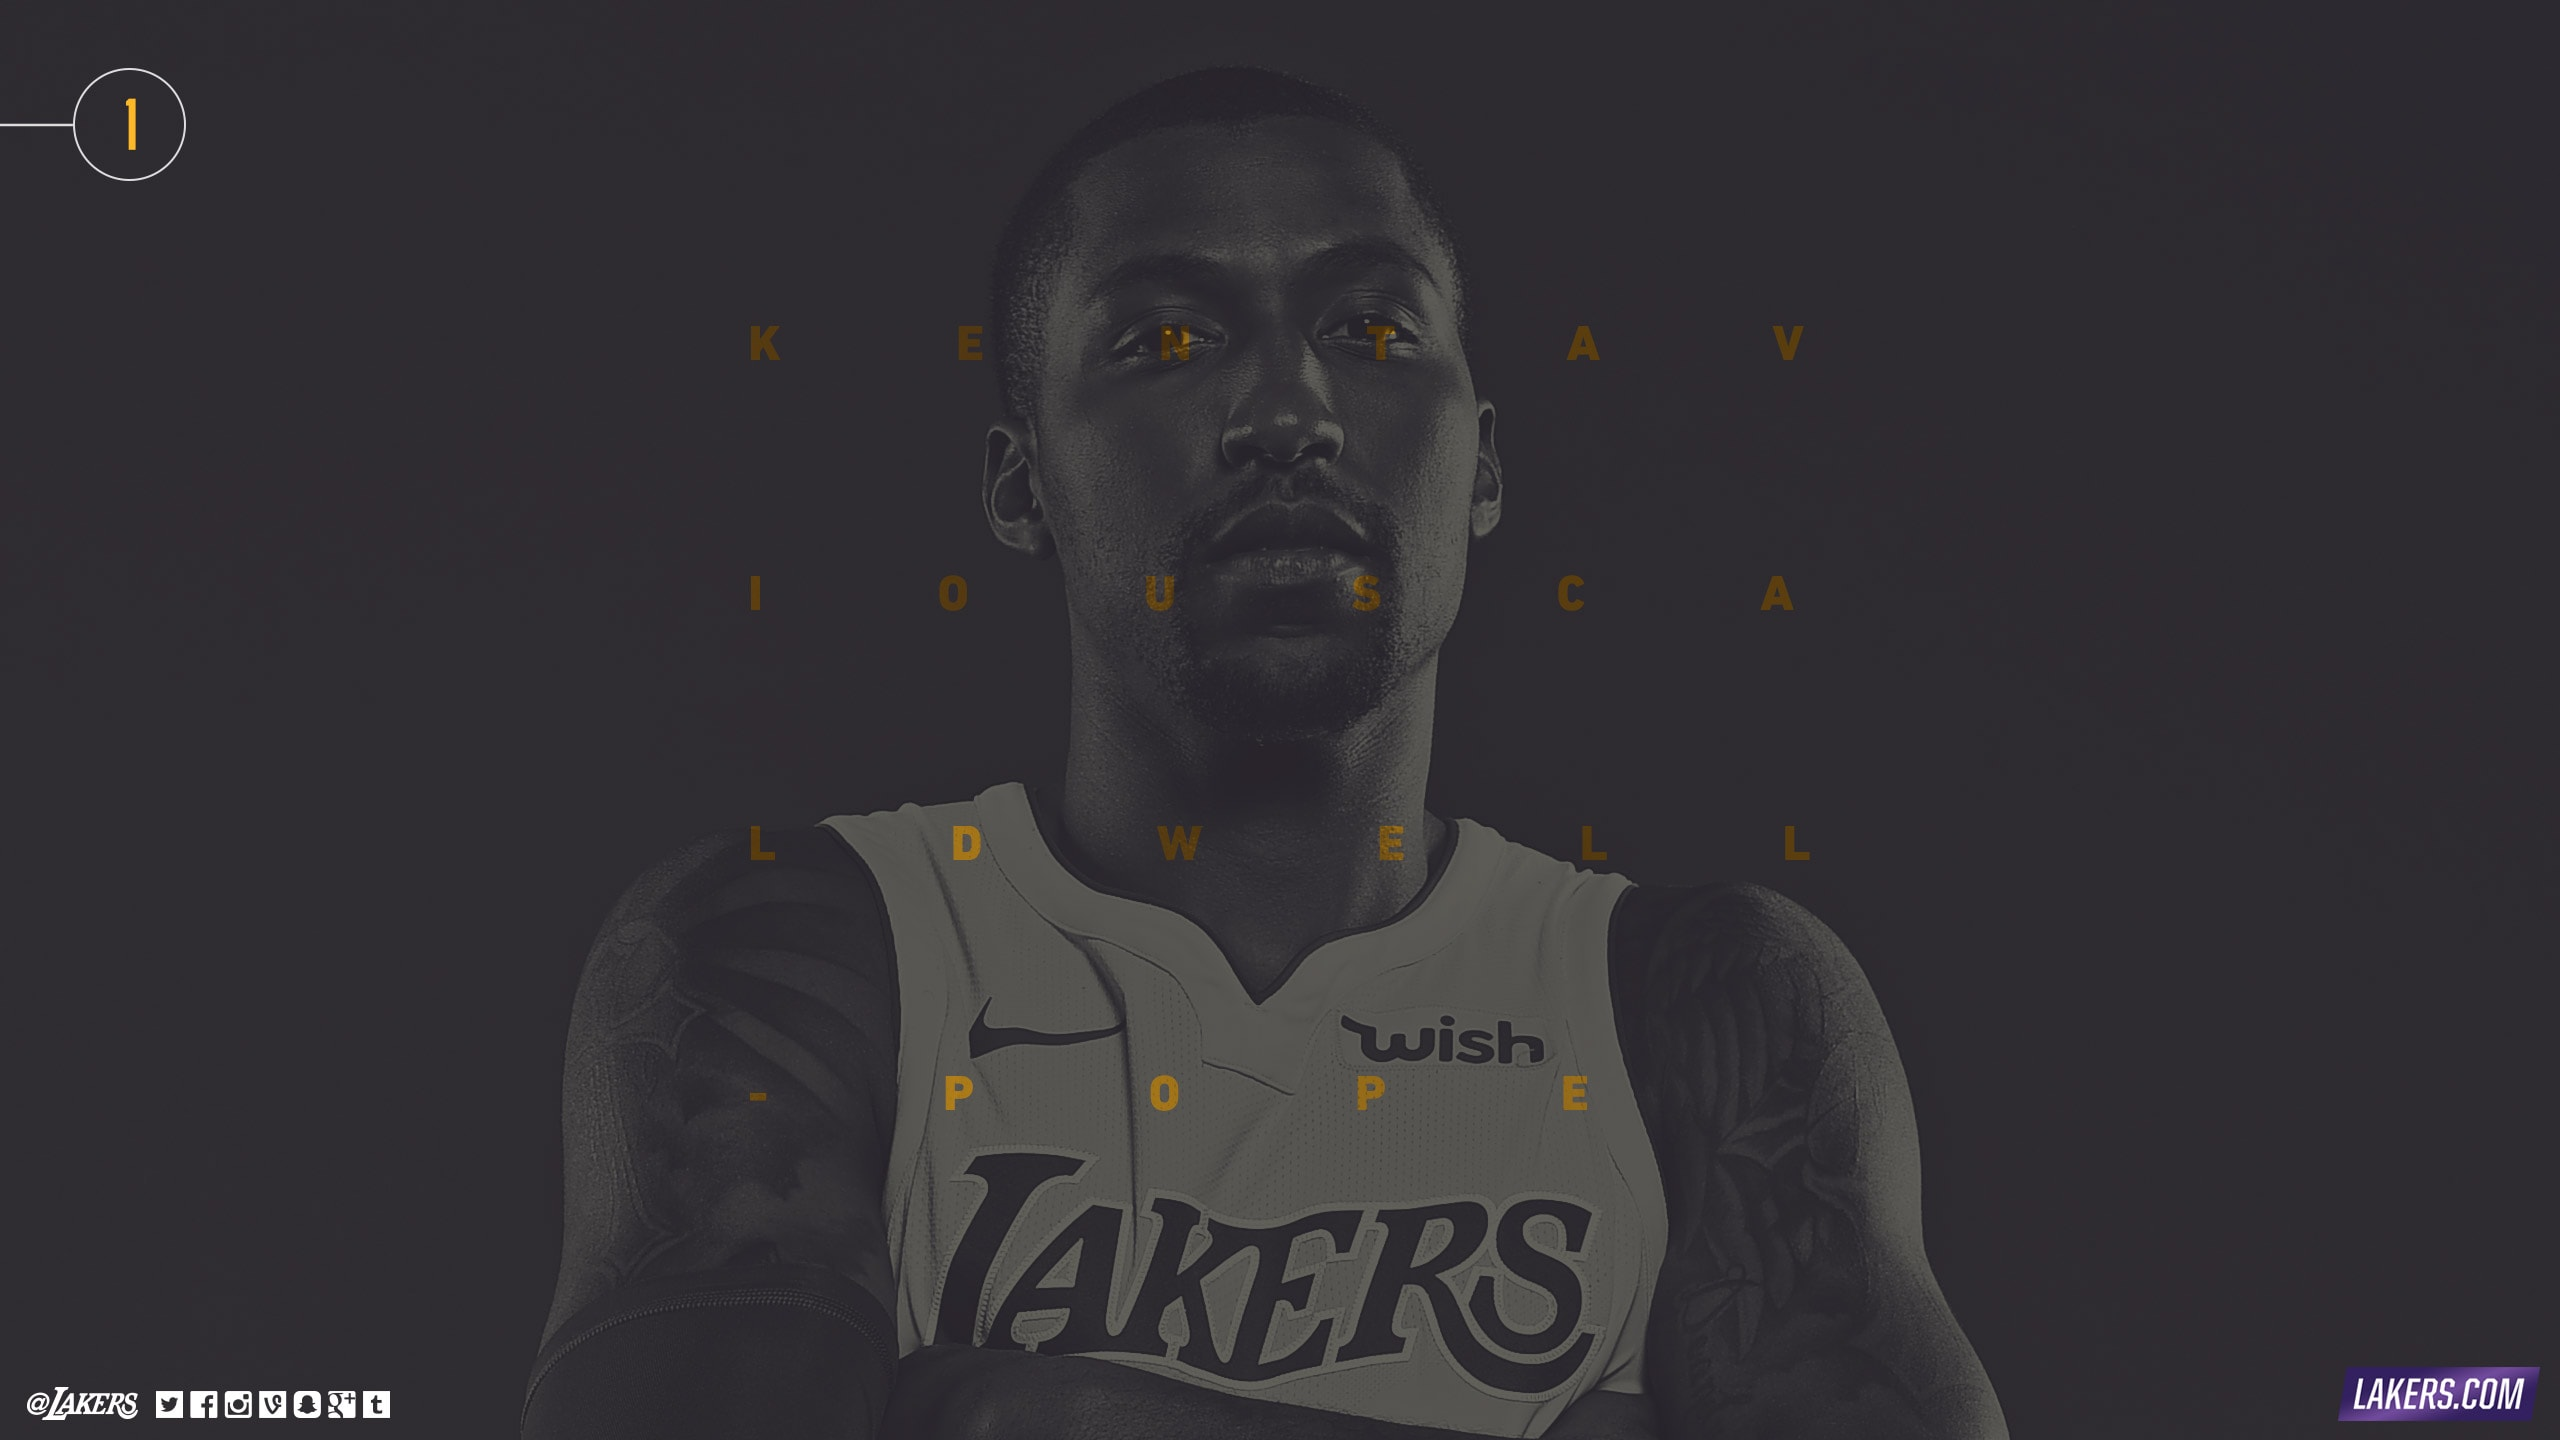 Kentavious Caldwell-Pope Player Wallpaper